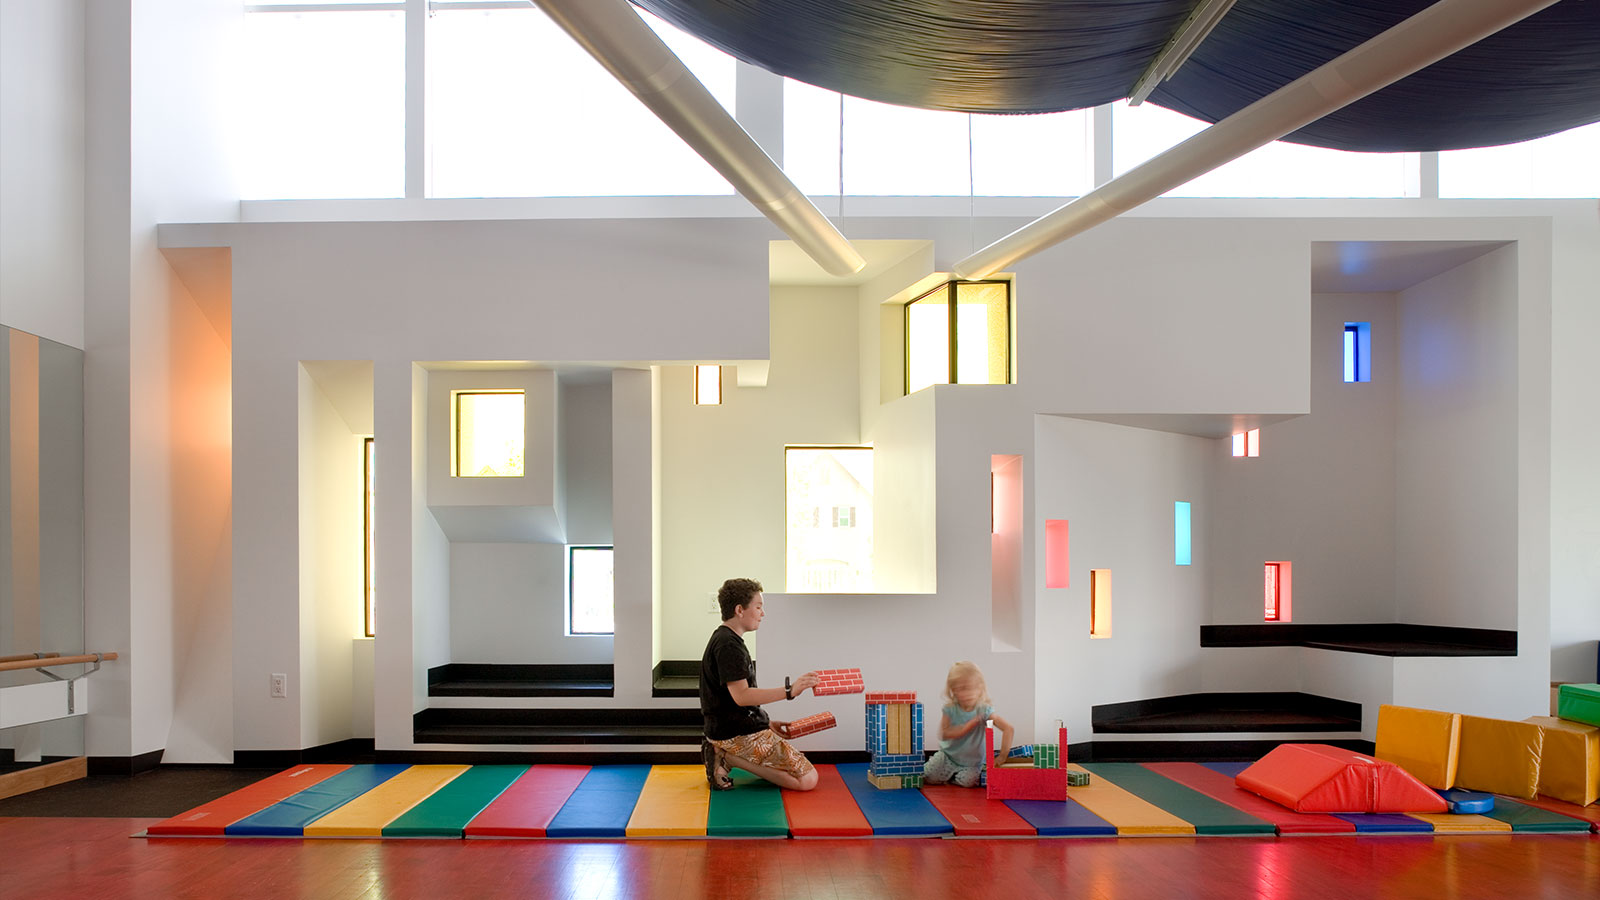 Classroom Design For The Blind ~ Anchor center for blind children davis partnership